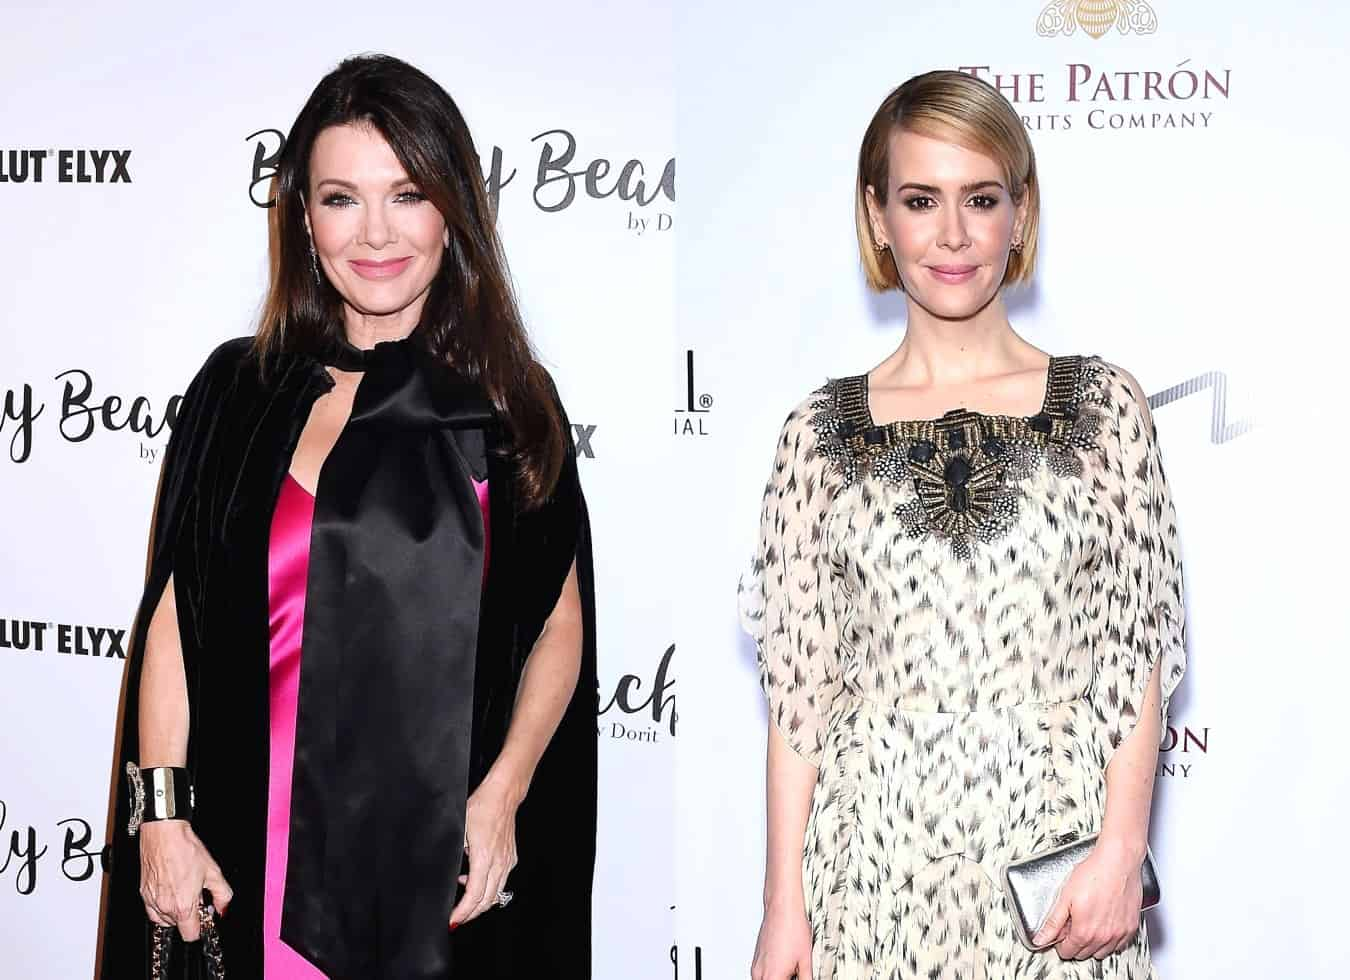 PHOTO: See Proof That Lisa Vanderpump Did Meet Sarah Paulson at 2015 Event and Find Out Which of Her Former RHOBH Co-Stars Were Present